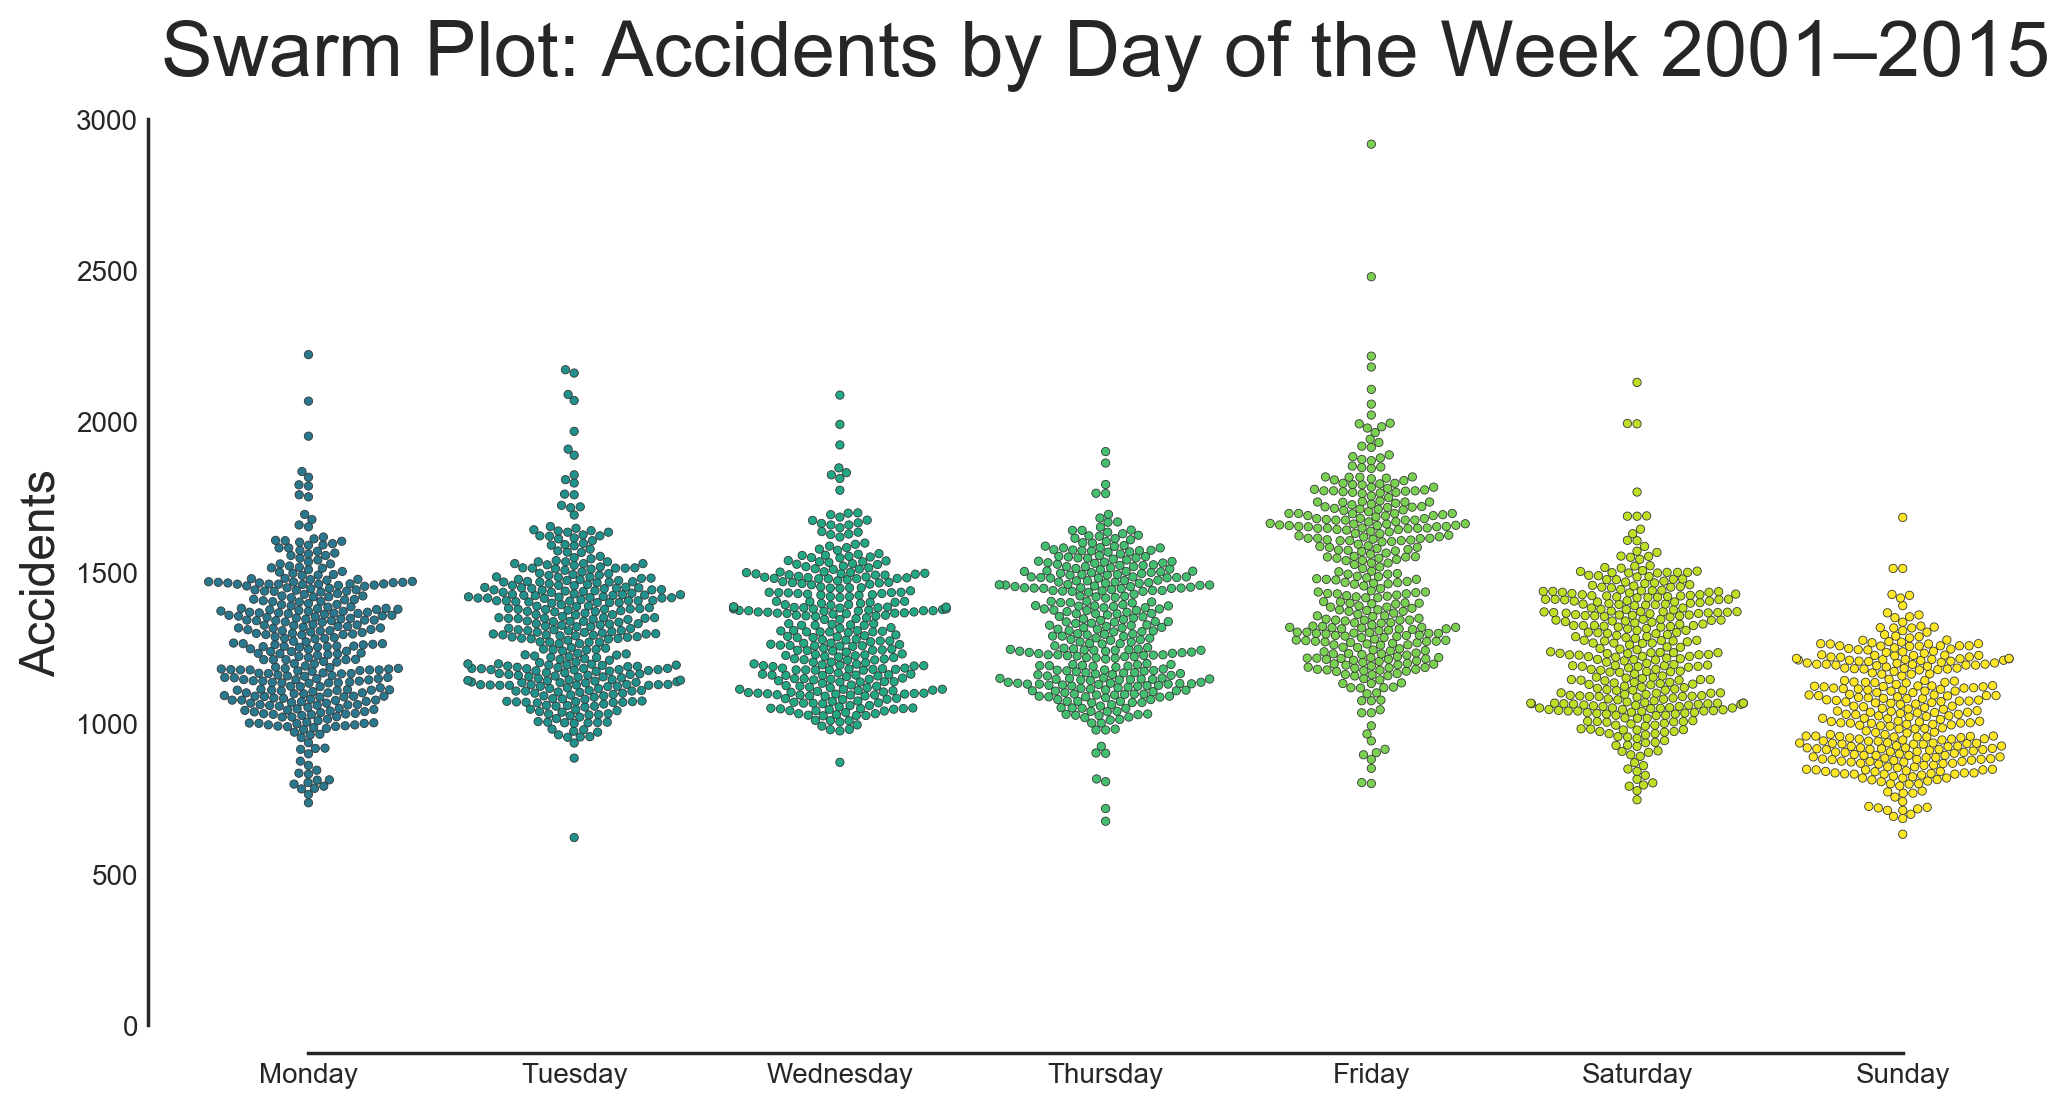 A swarm plot showing the distribution of accidents per day in California from 2001–2015 by day of the week.